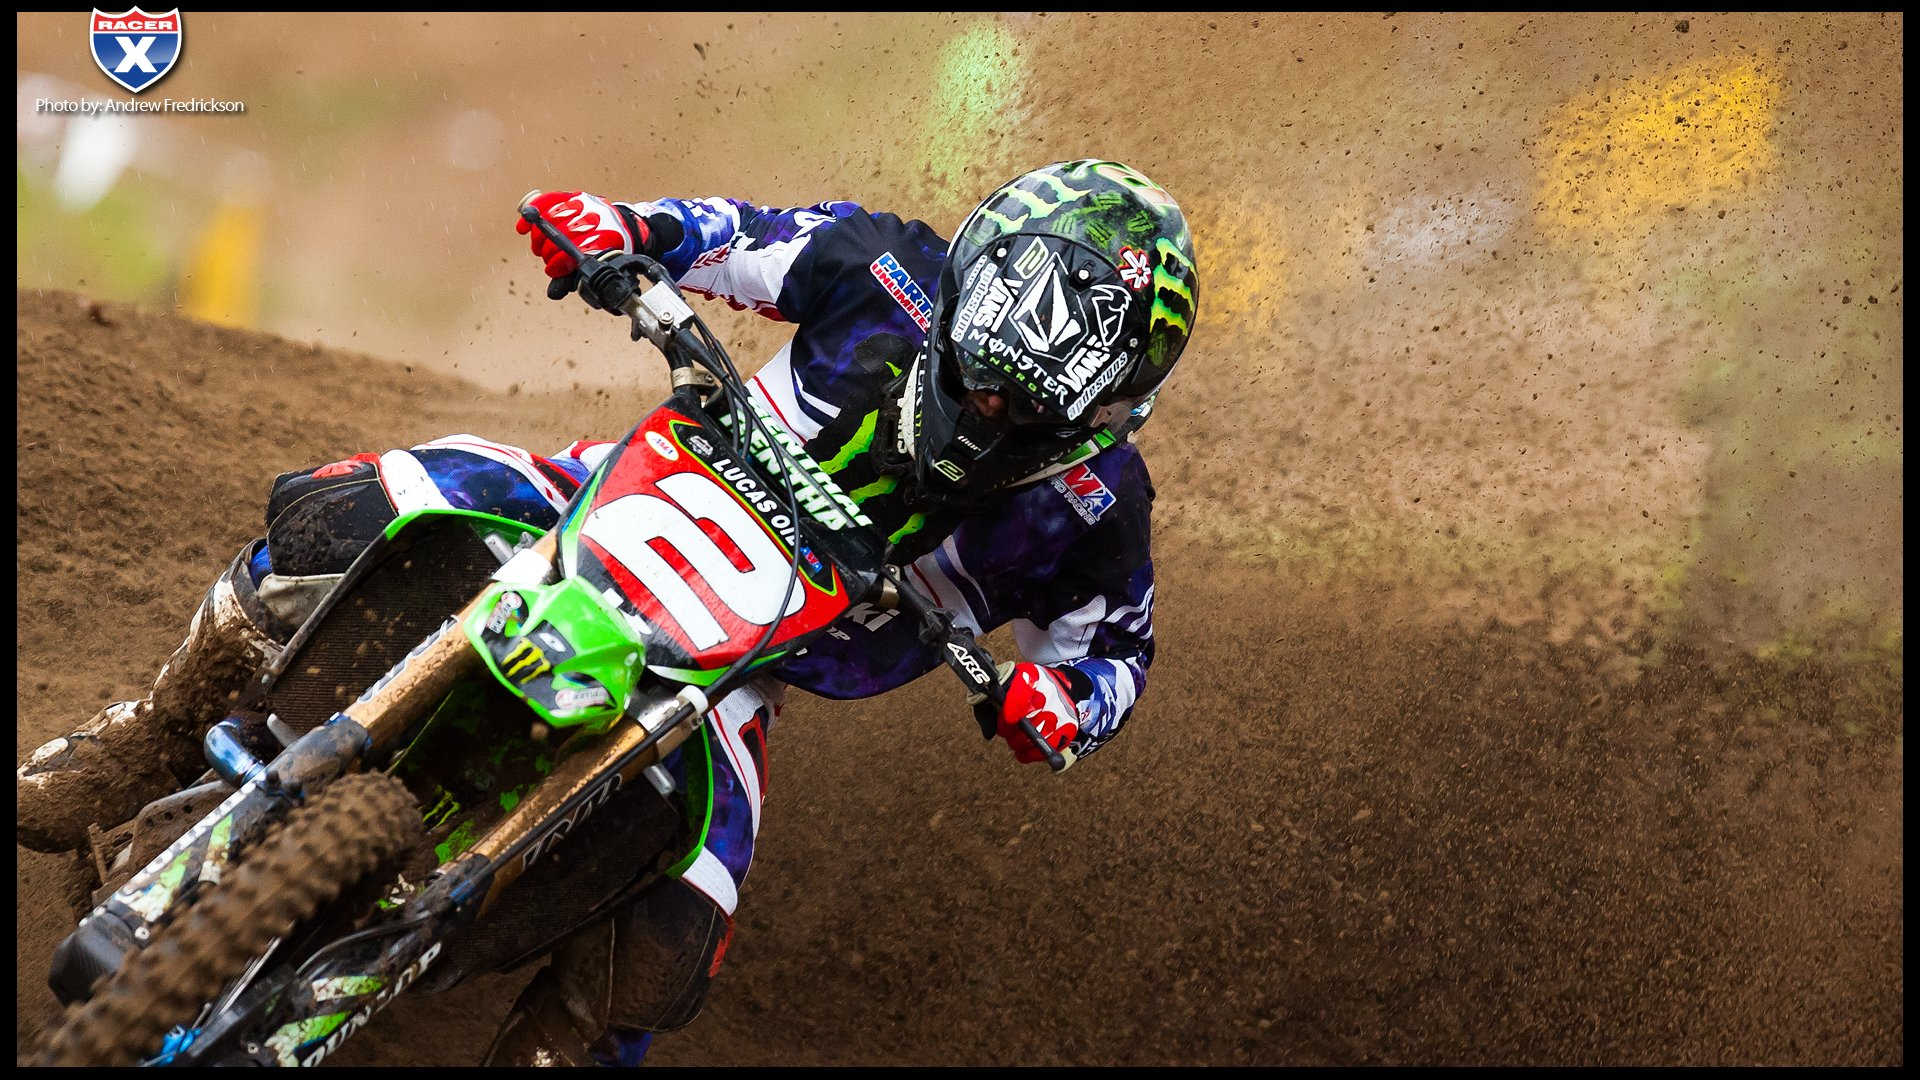 Southwick Wallpapers Motocross Racer X Online